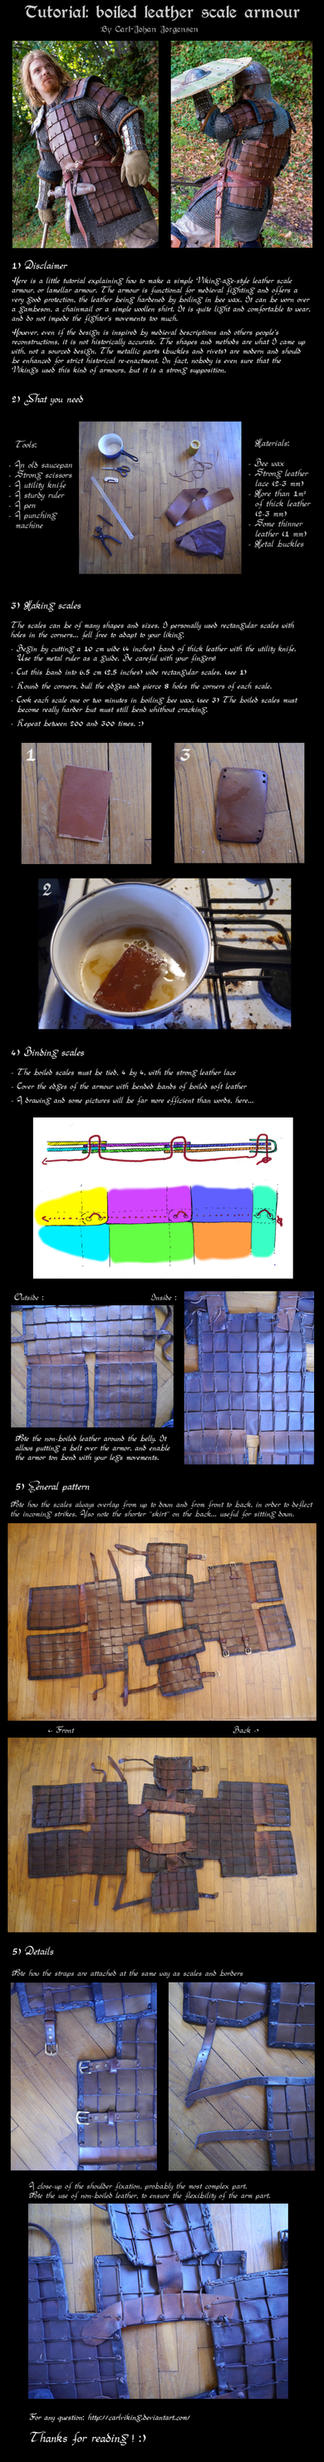 Tutorial: leather armour by carlviking